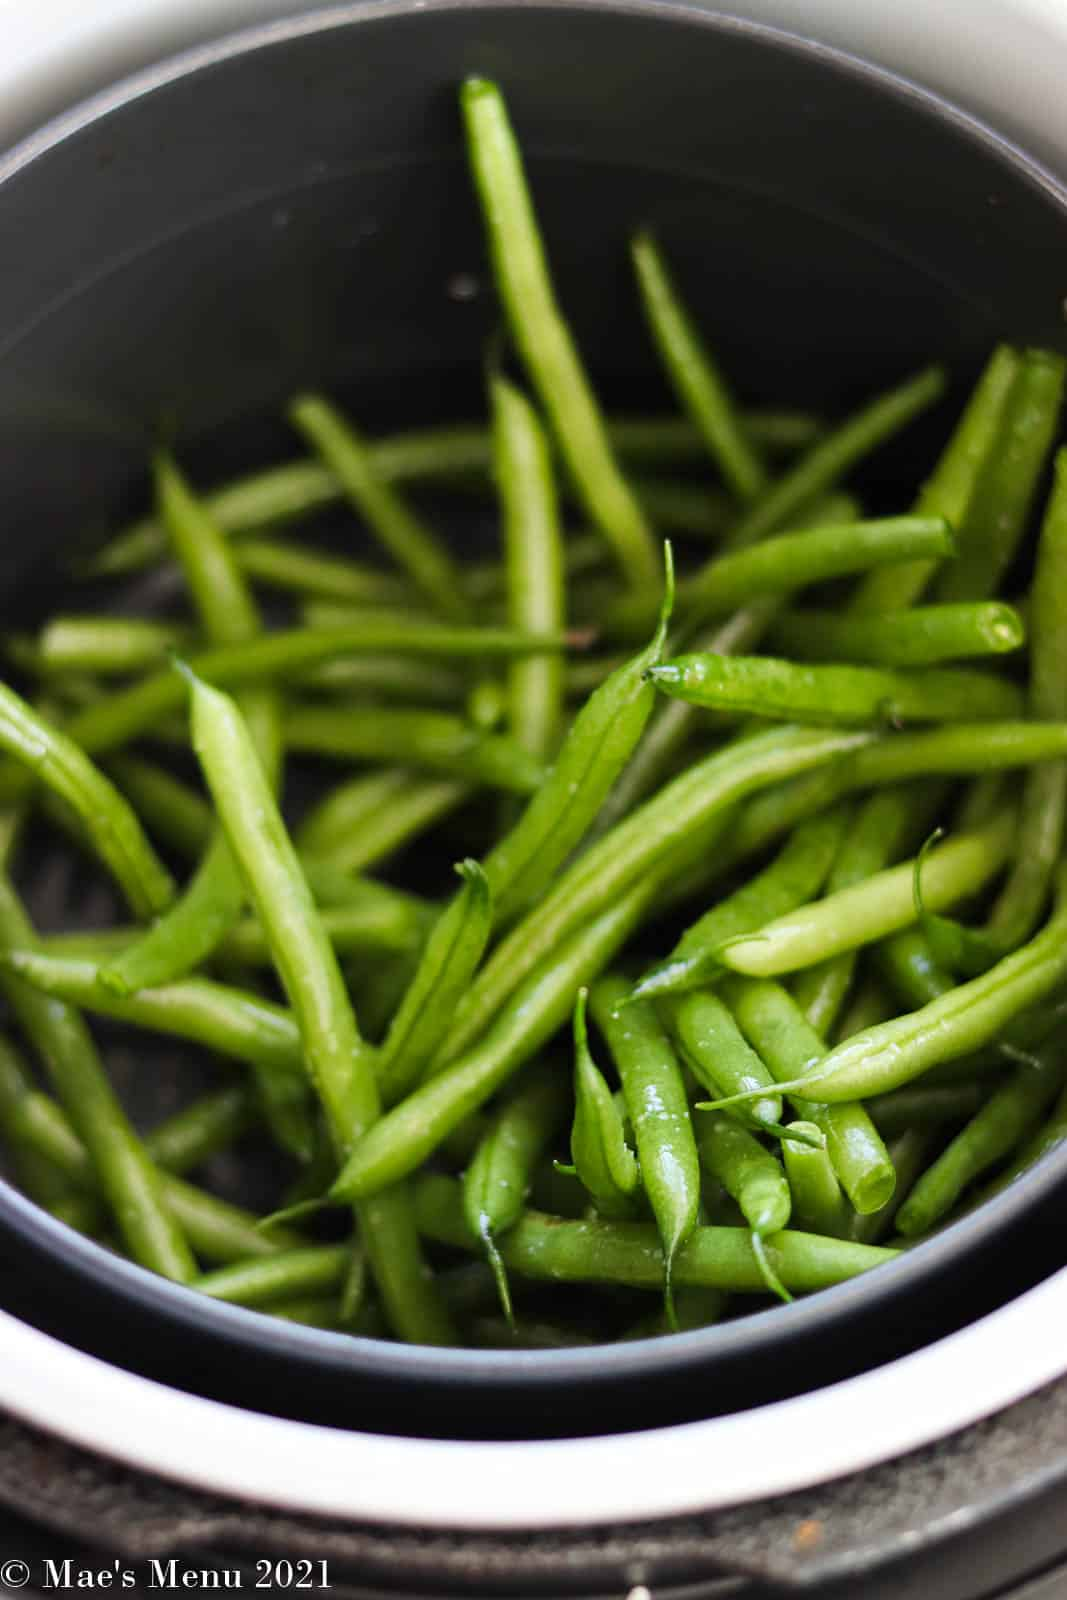 Green beans in the air fryer basket